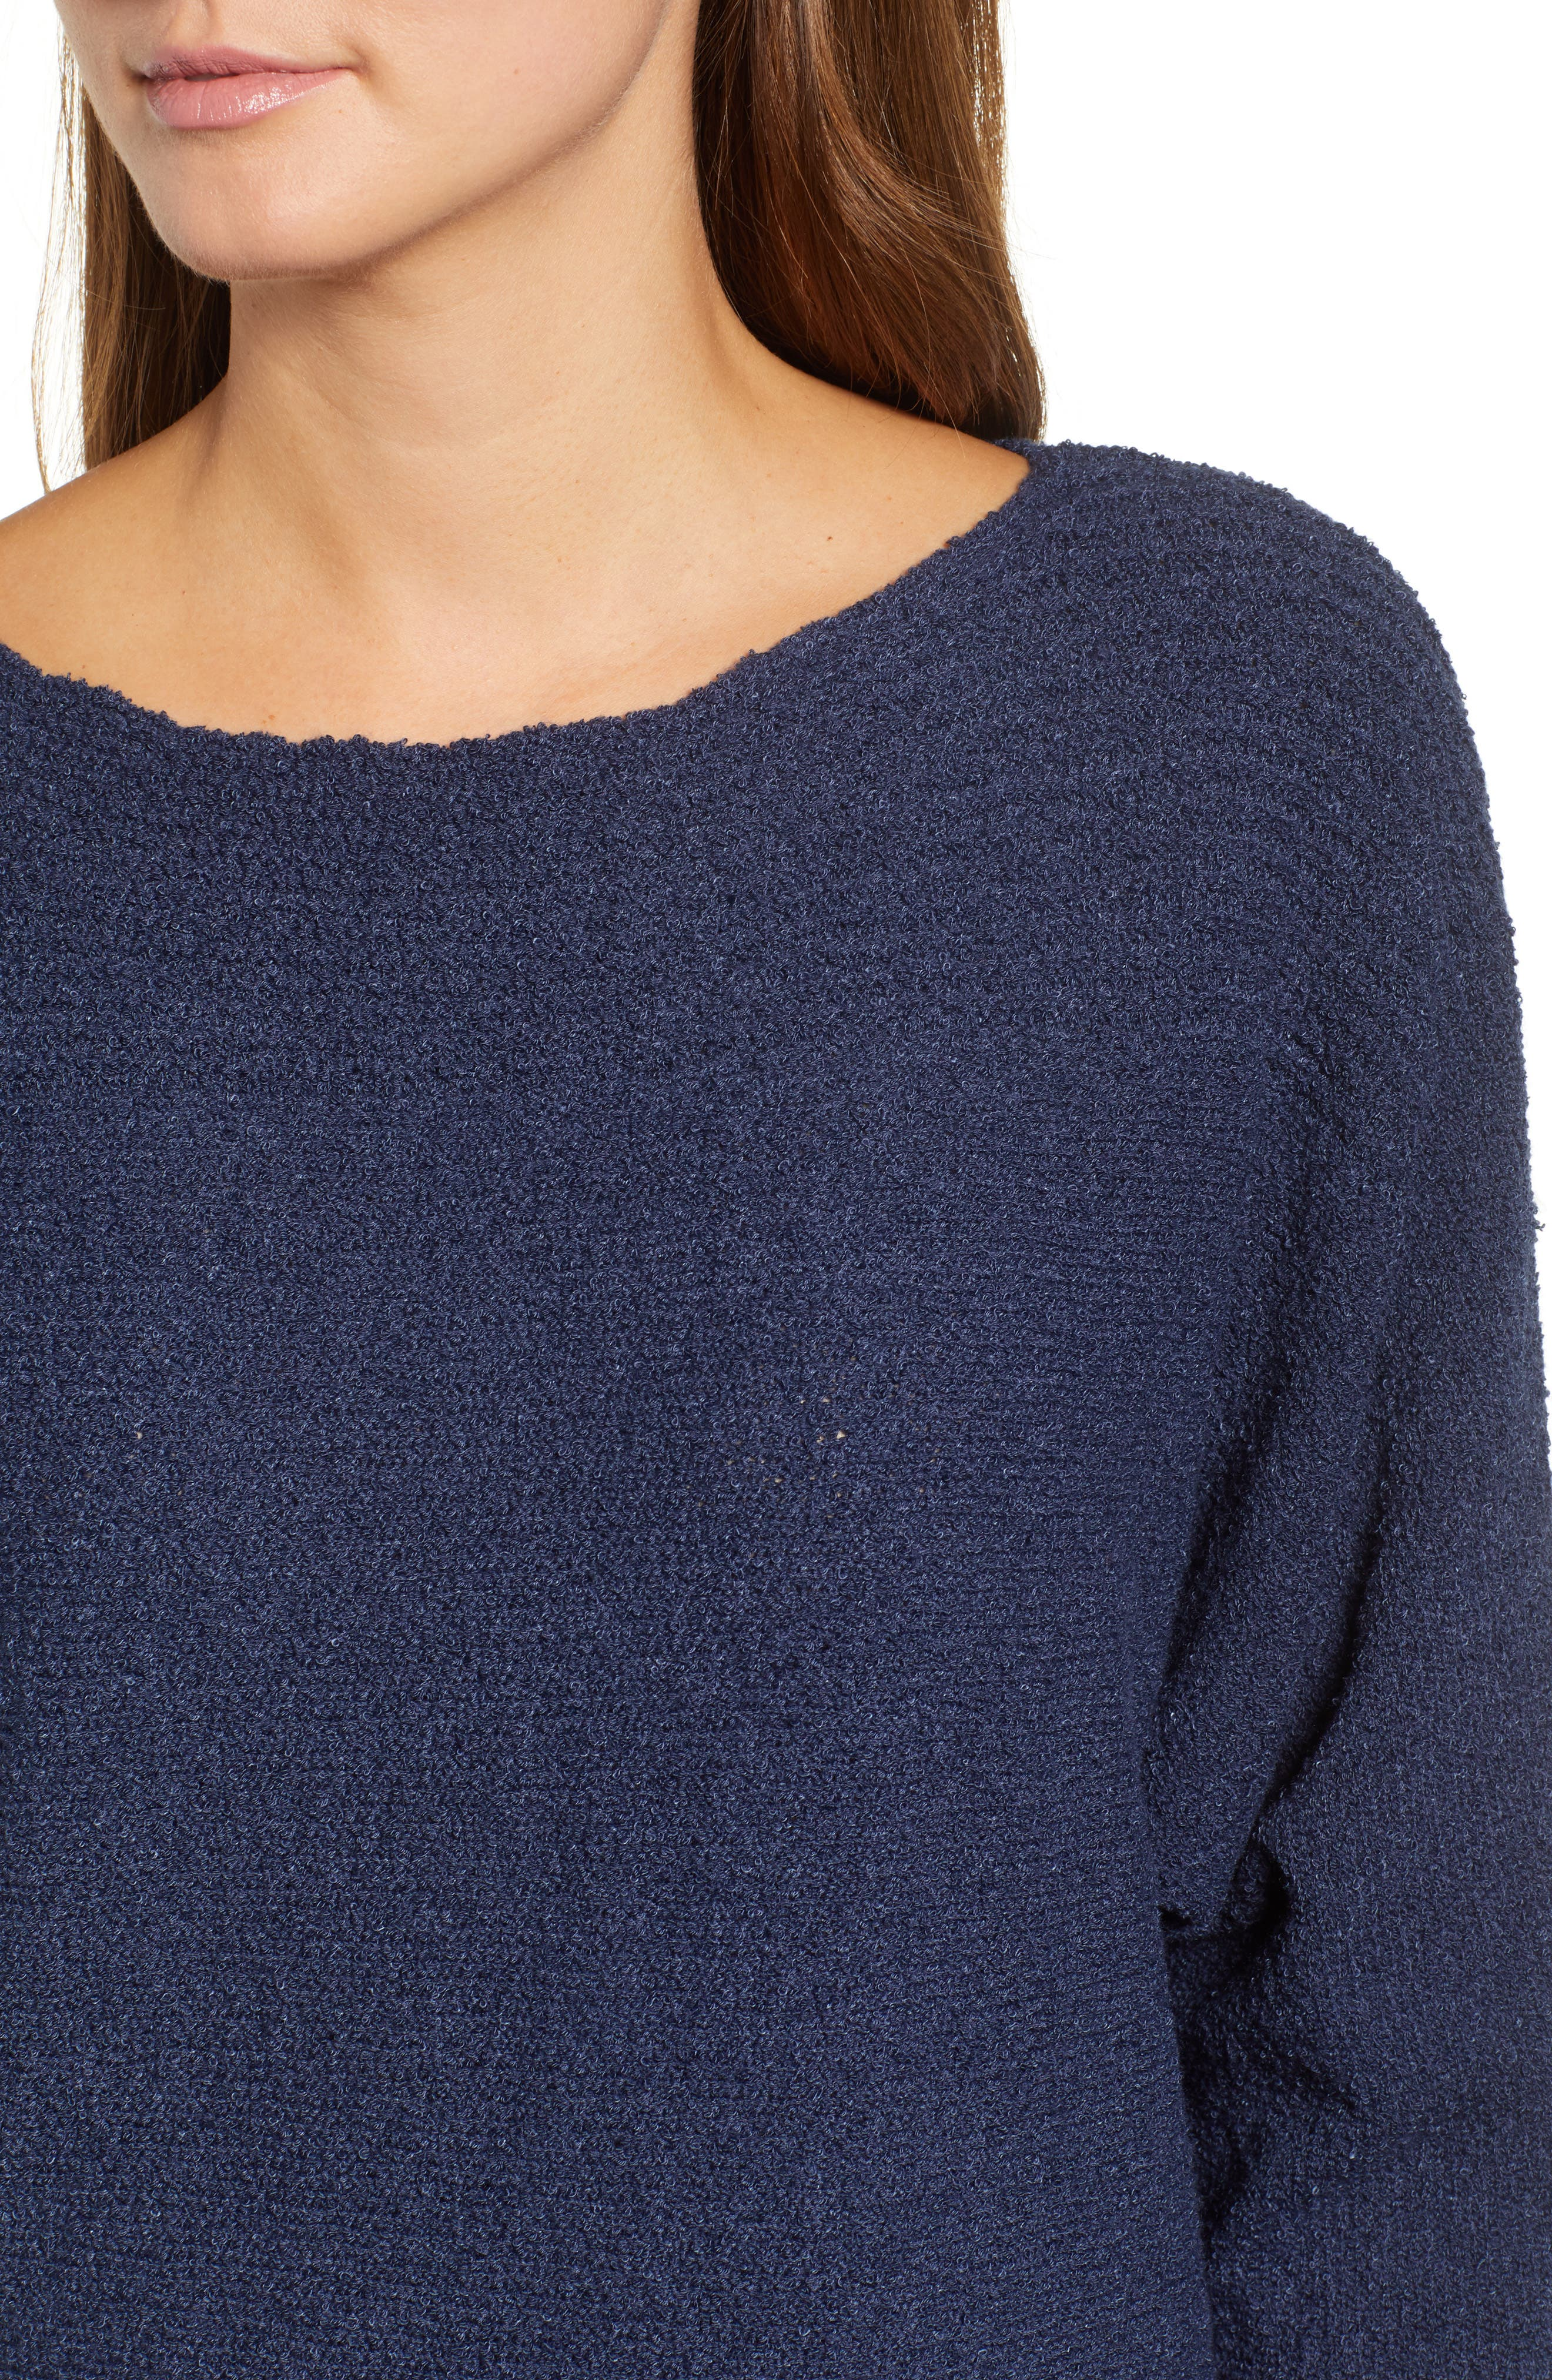 Calson<sup>®</sup> Dolman Sleeve Sweater,                             Alternate thumbnail 4, color,                             410